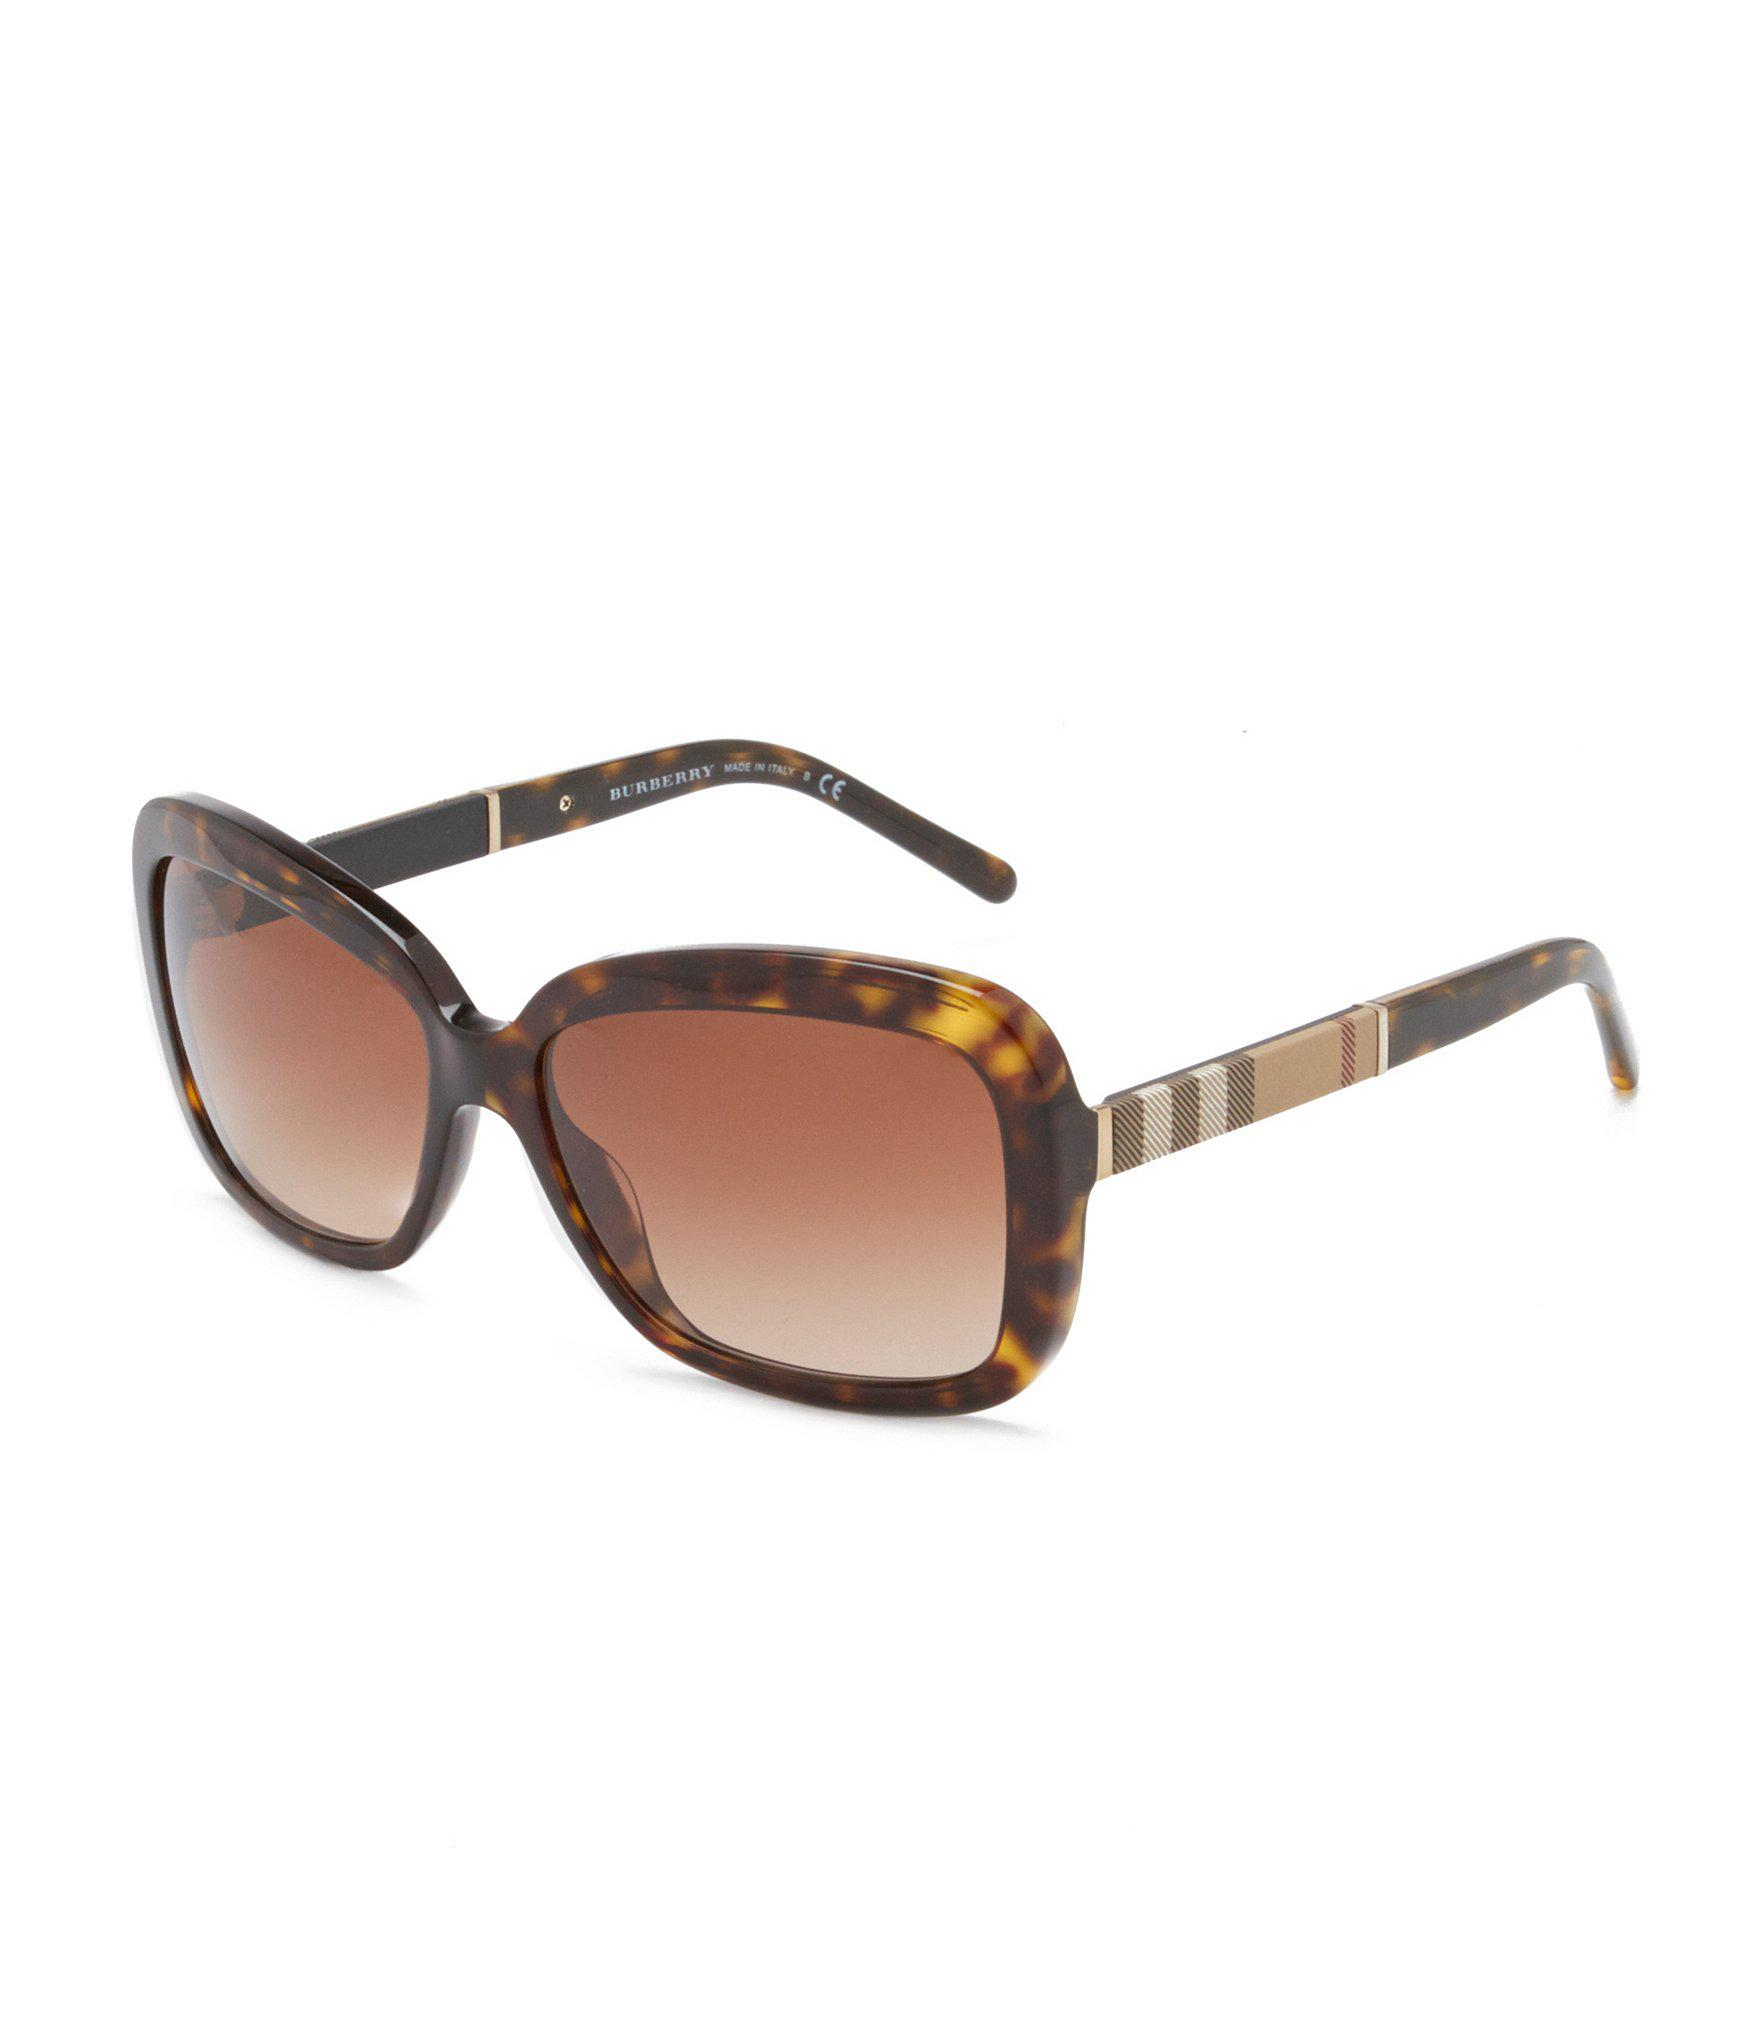 436c7aa8535d Lyst - Burberry Canvas Check Square Gradient Sunglasses in Brown